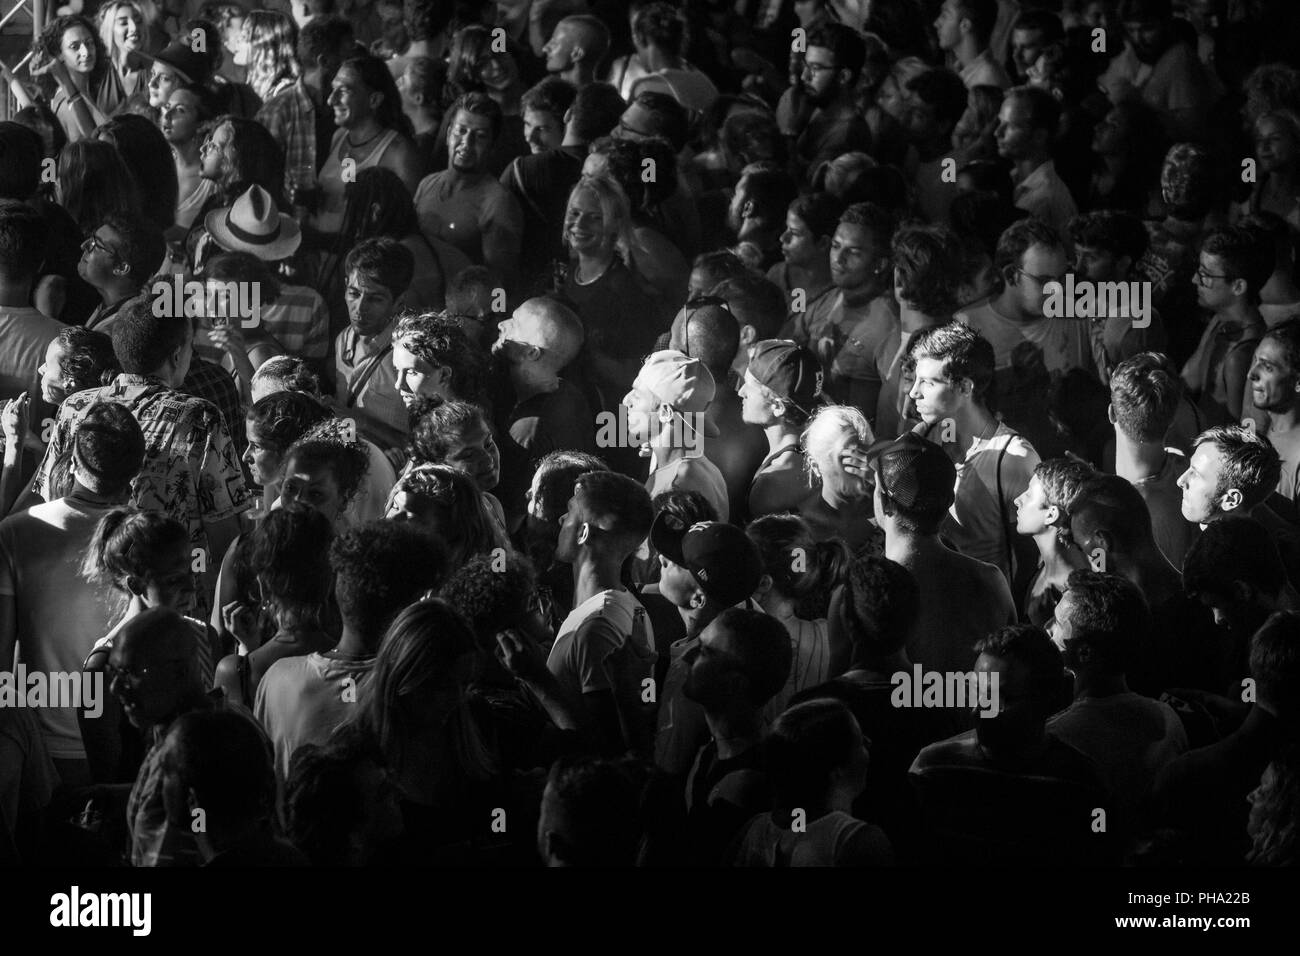 Imperia, Italy, 03.08.2018: group of people during an electronic music concert organized in the City of Imperia. - Stock Image